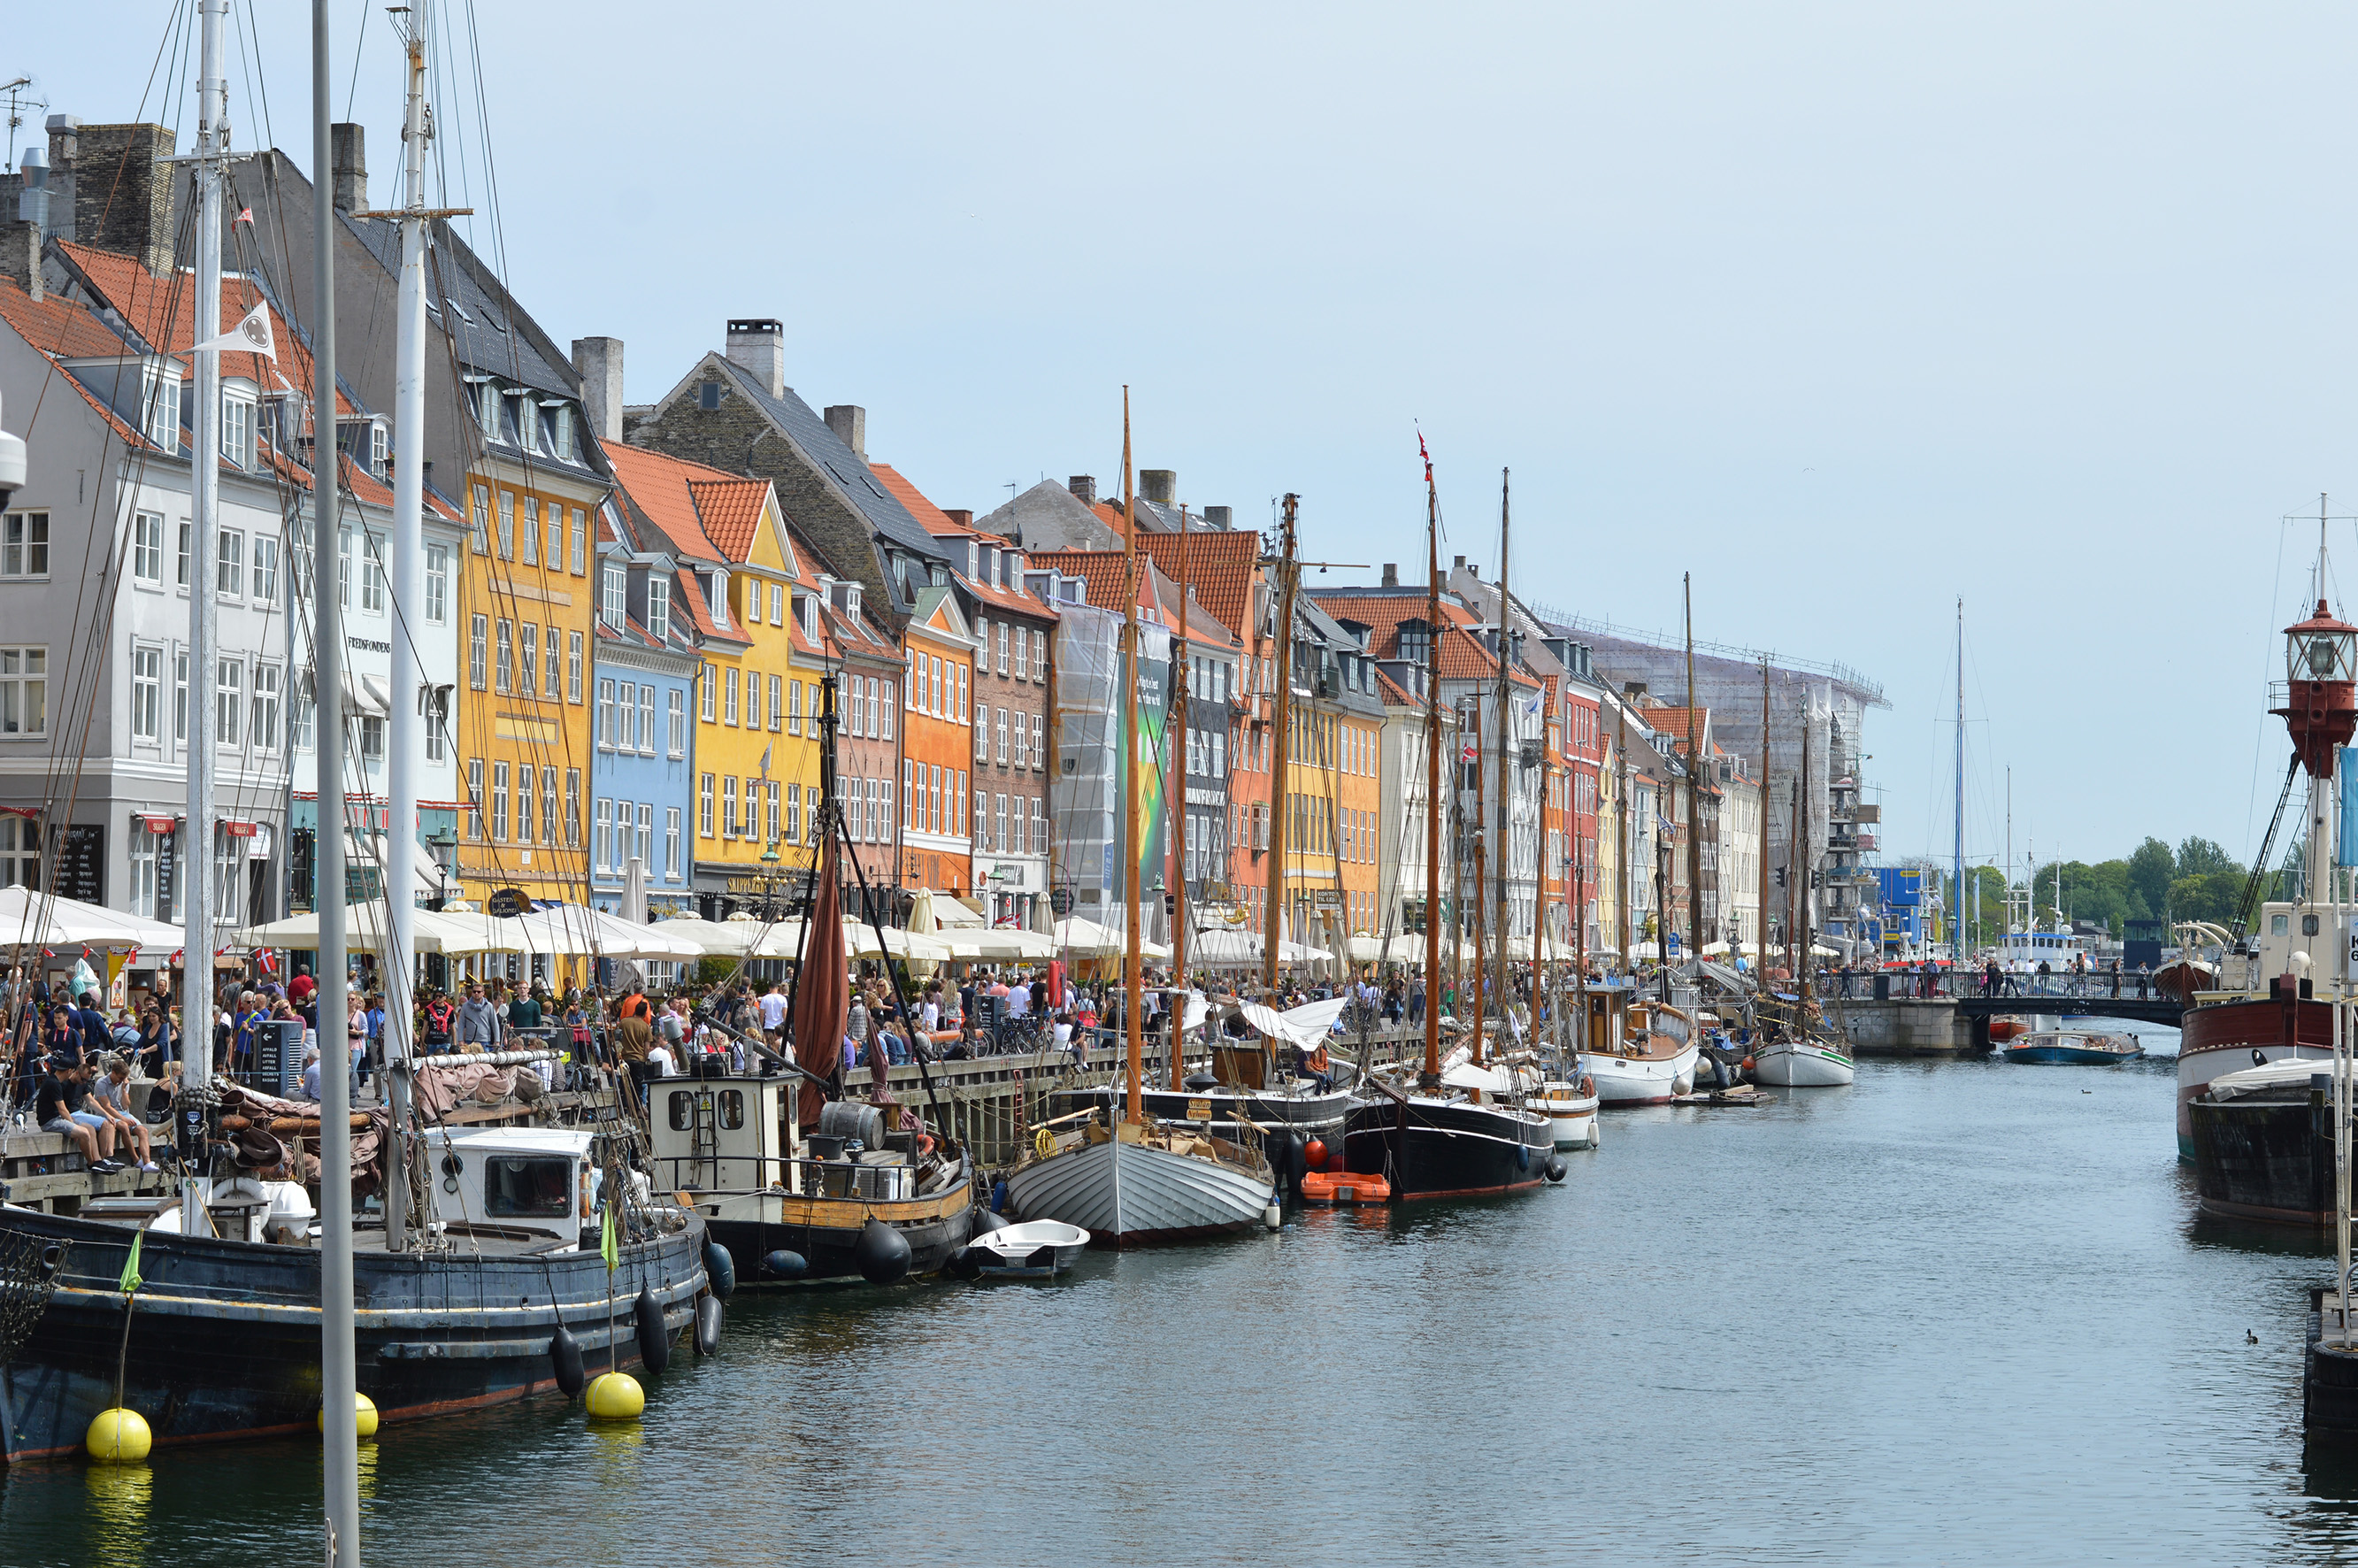 Copenhague -City guide